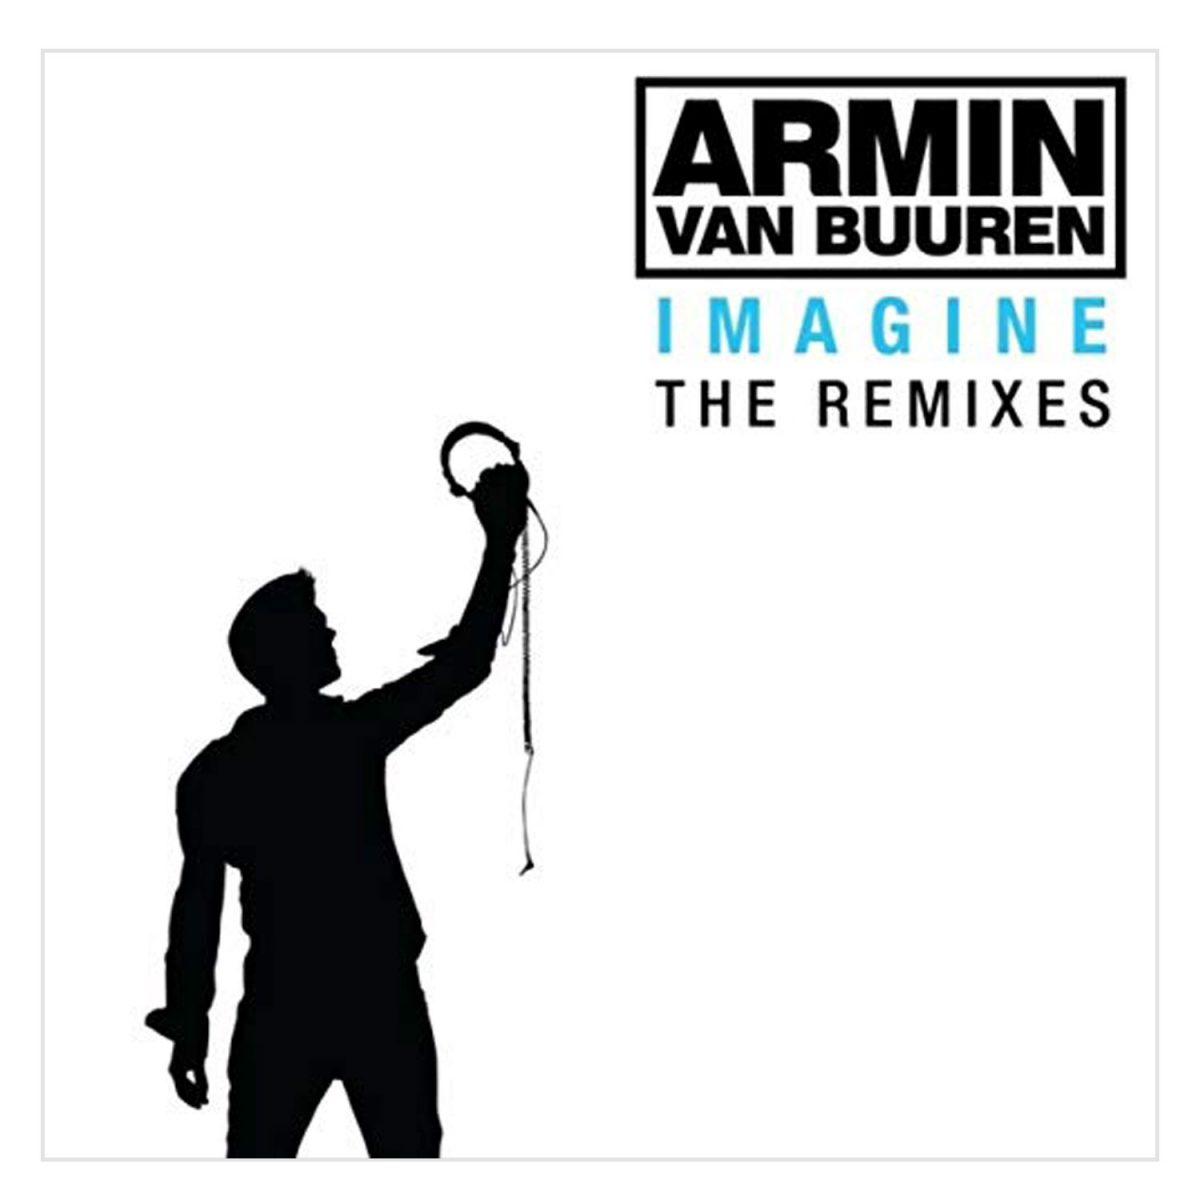 Armin van Buuren feat. Sharon den Adel - In and Out of Love (The Blizzard Remix) on Armada Music